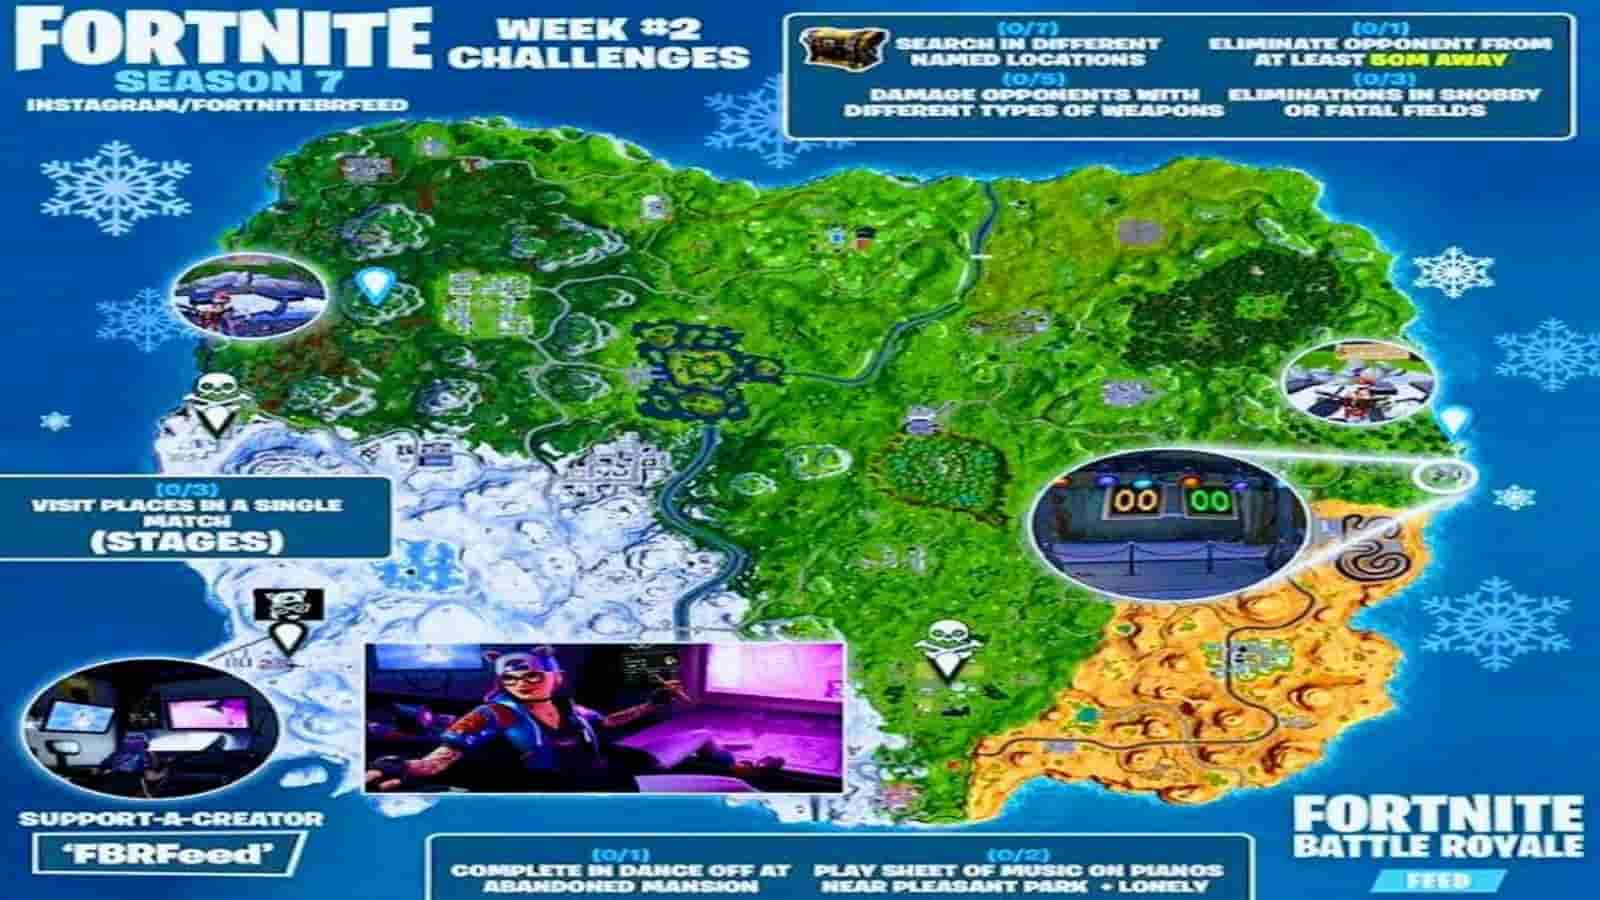 Fortnite Season 7 Week 2 Challenges: Launch Date and Details